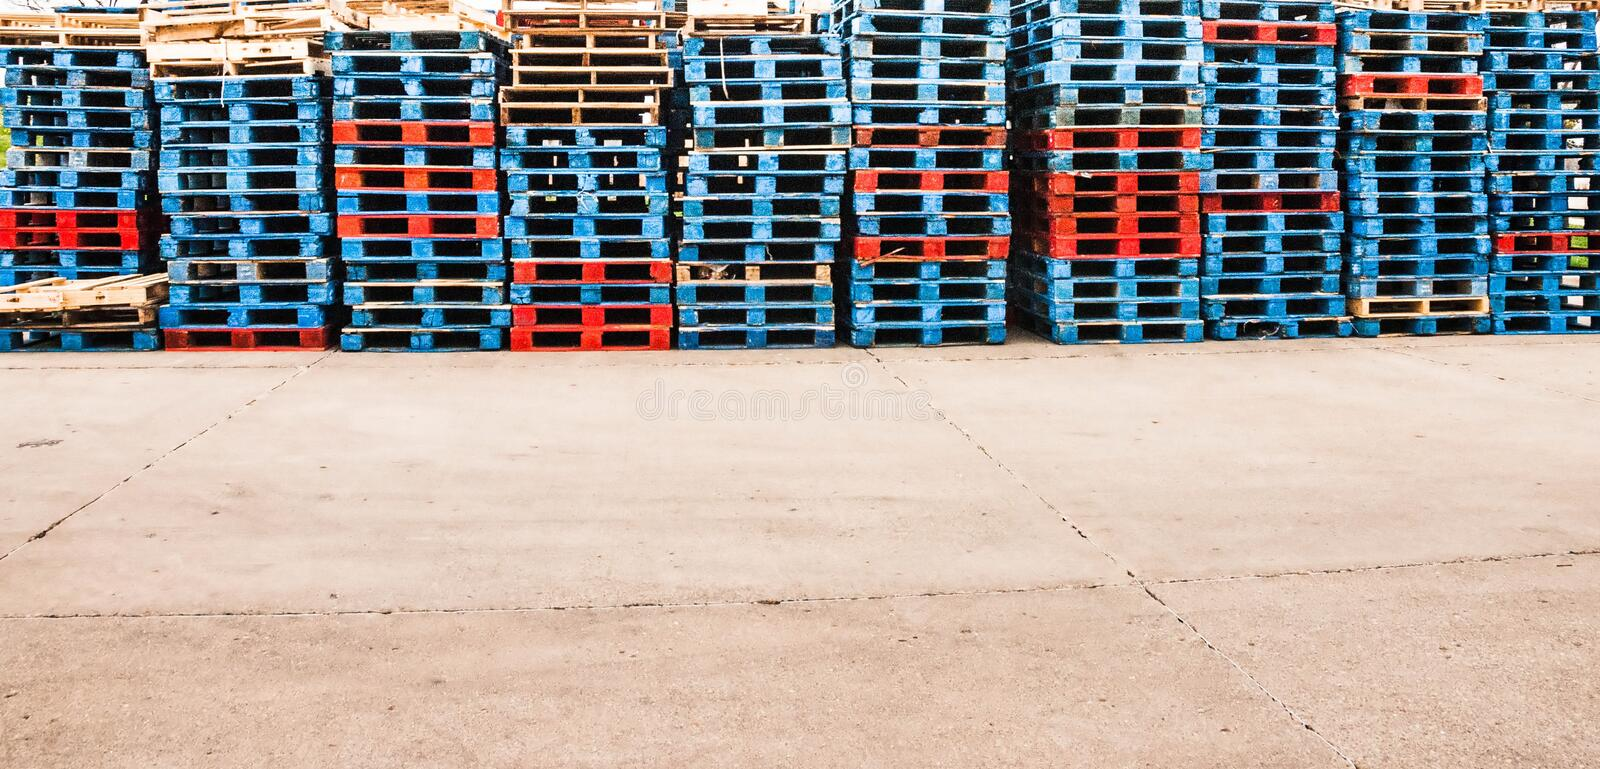 Wooden shipping pallets royalty free stock photography